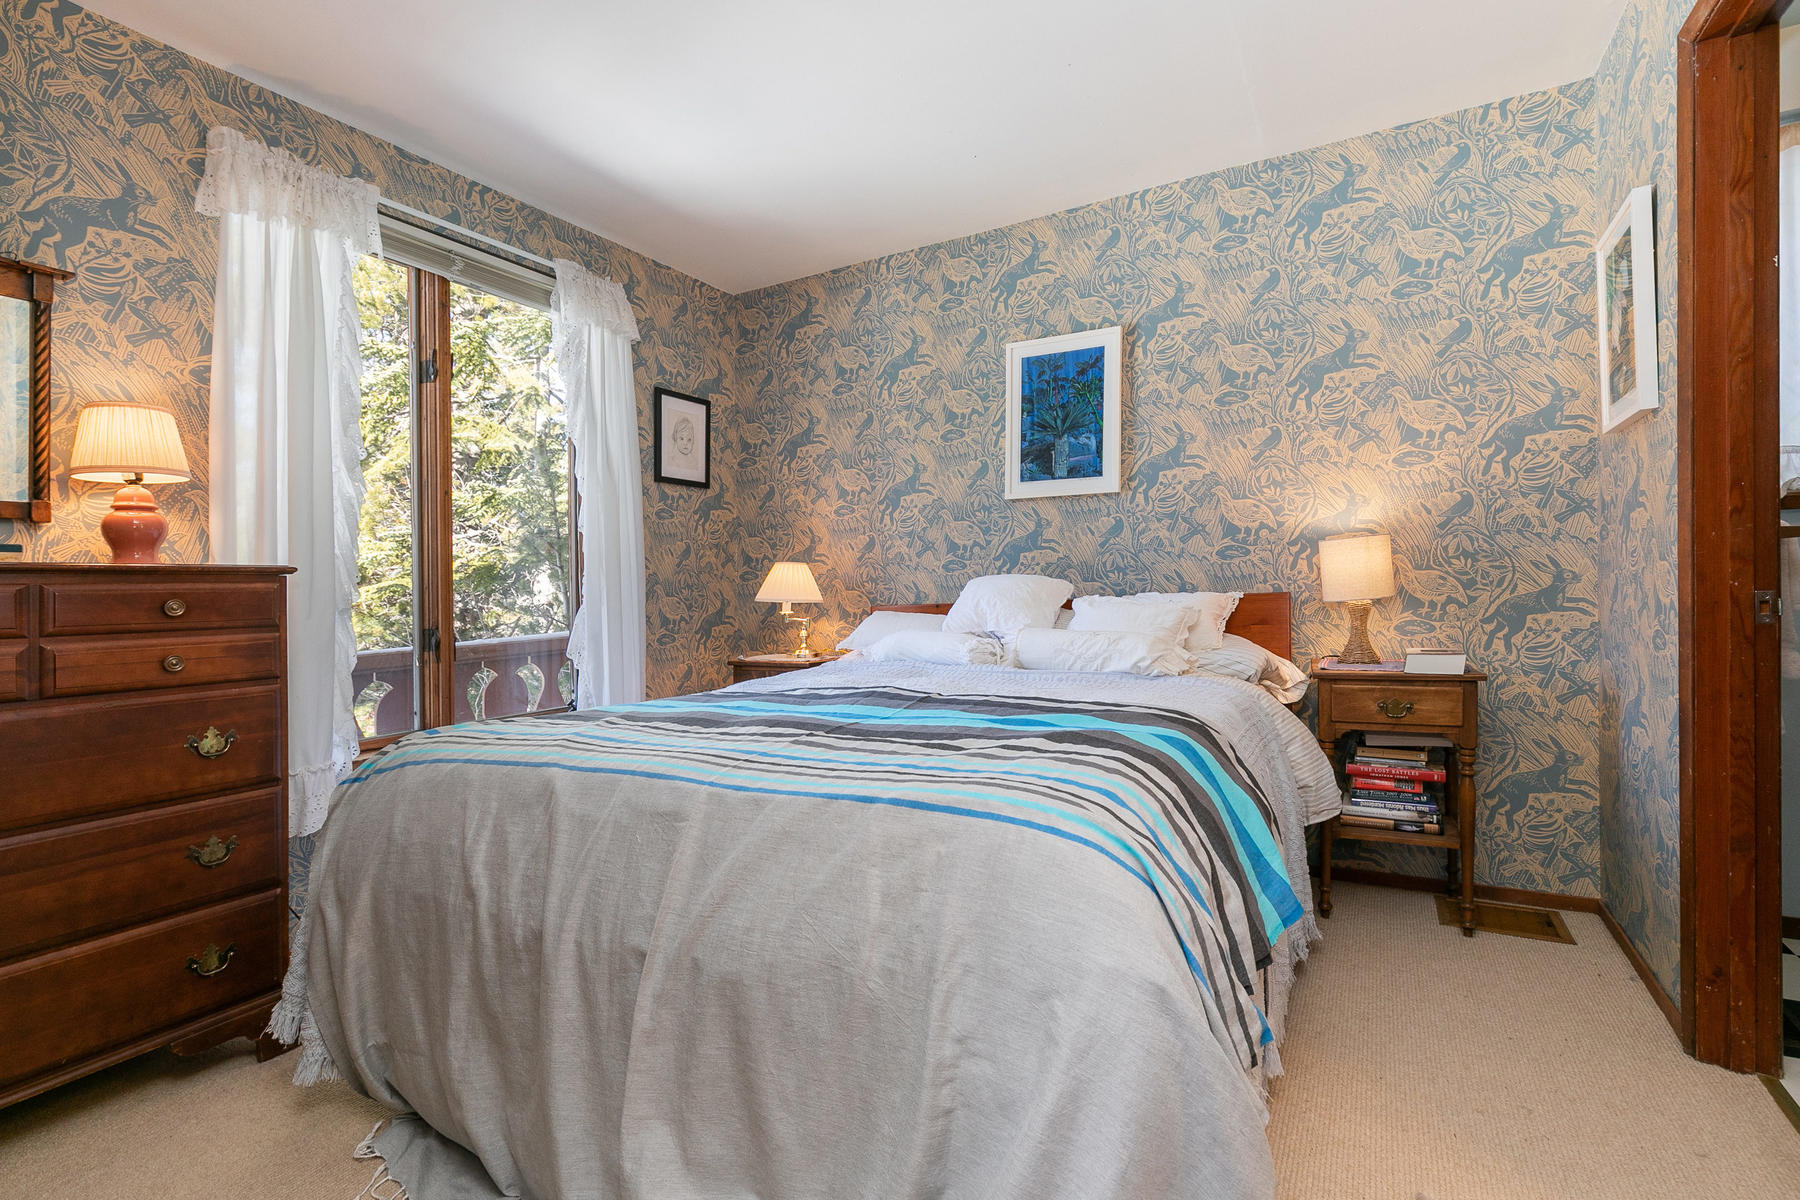 Additional photo for property listing at 750 Pennyroyal Lane Norden California 95724 750 Pennyroyal Lane Norden, California 95742 United States